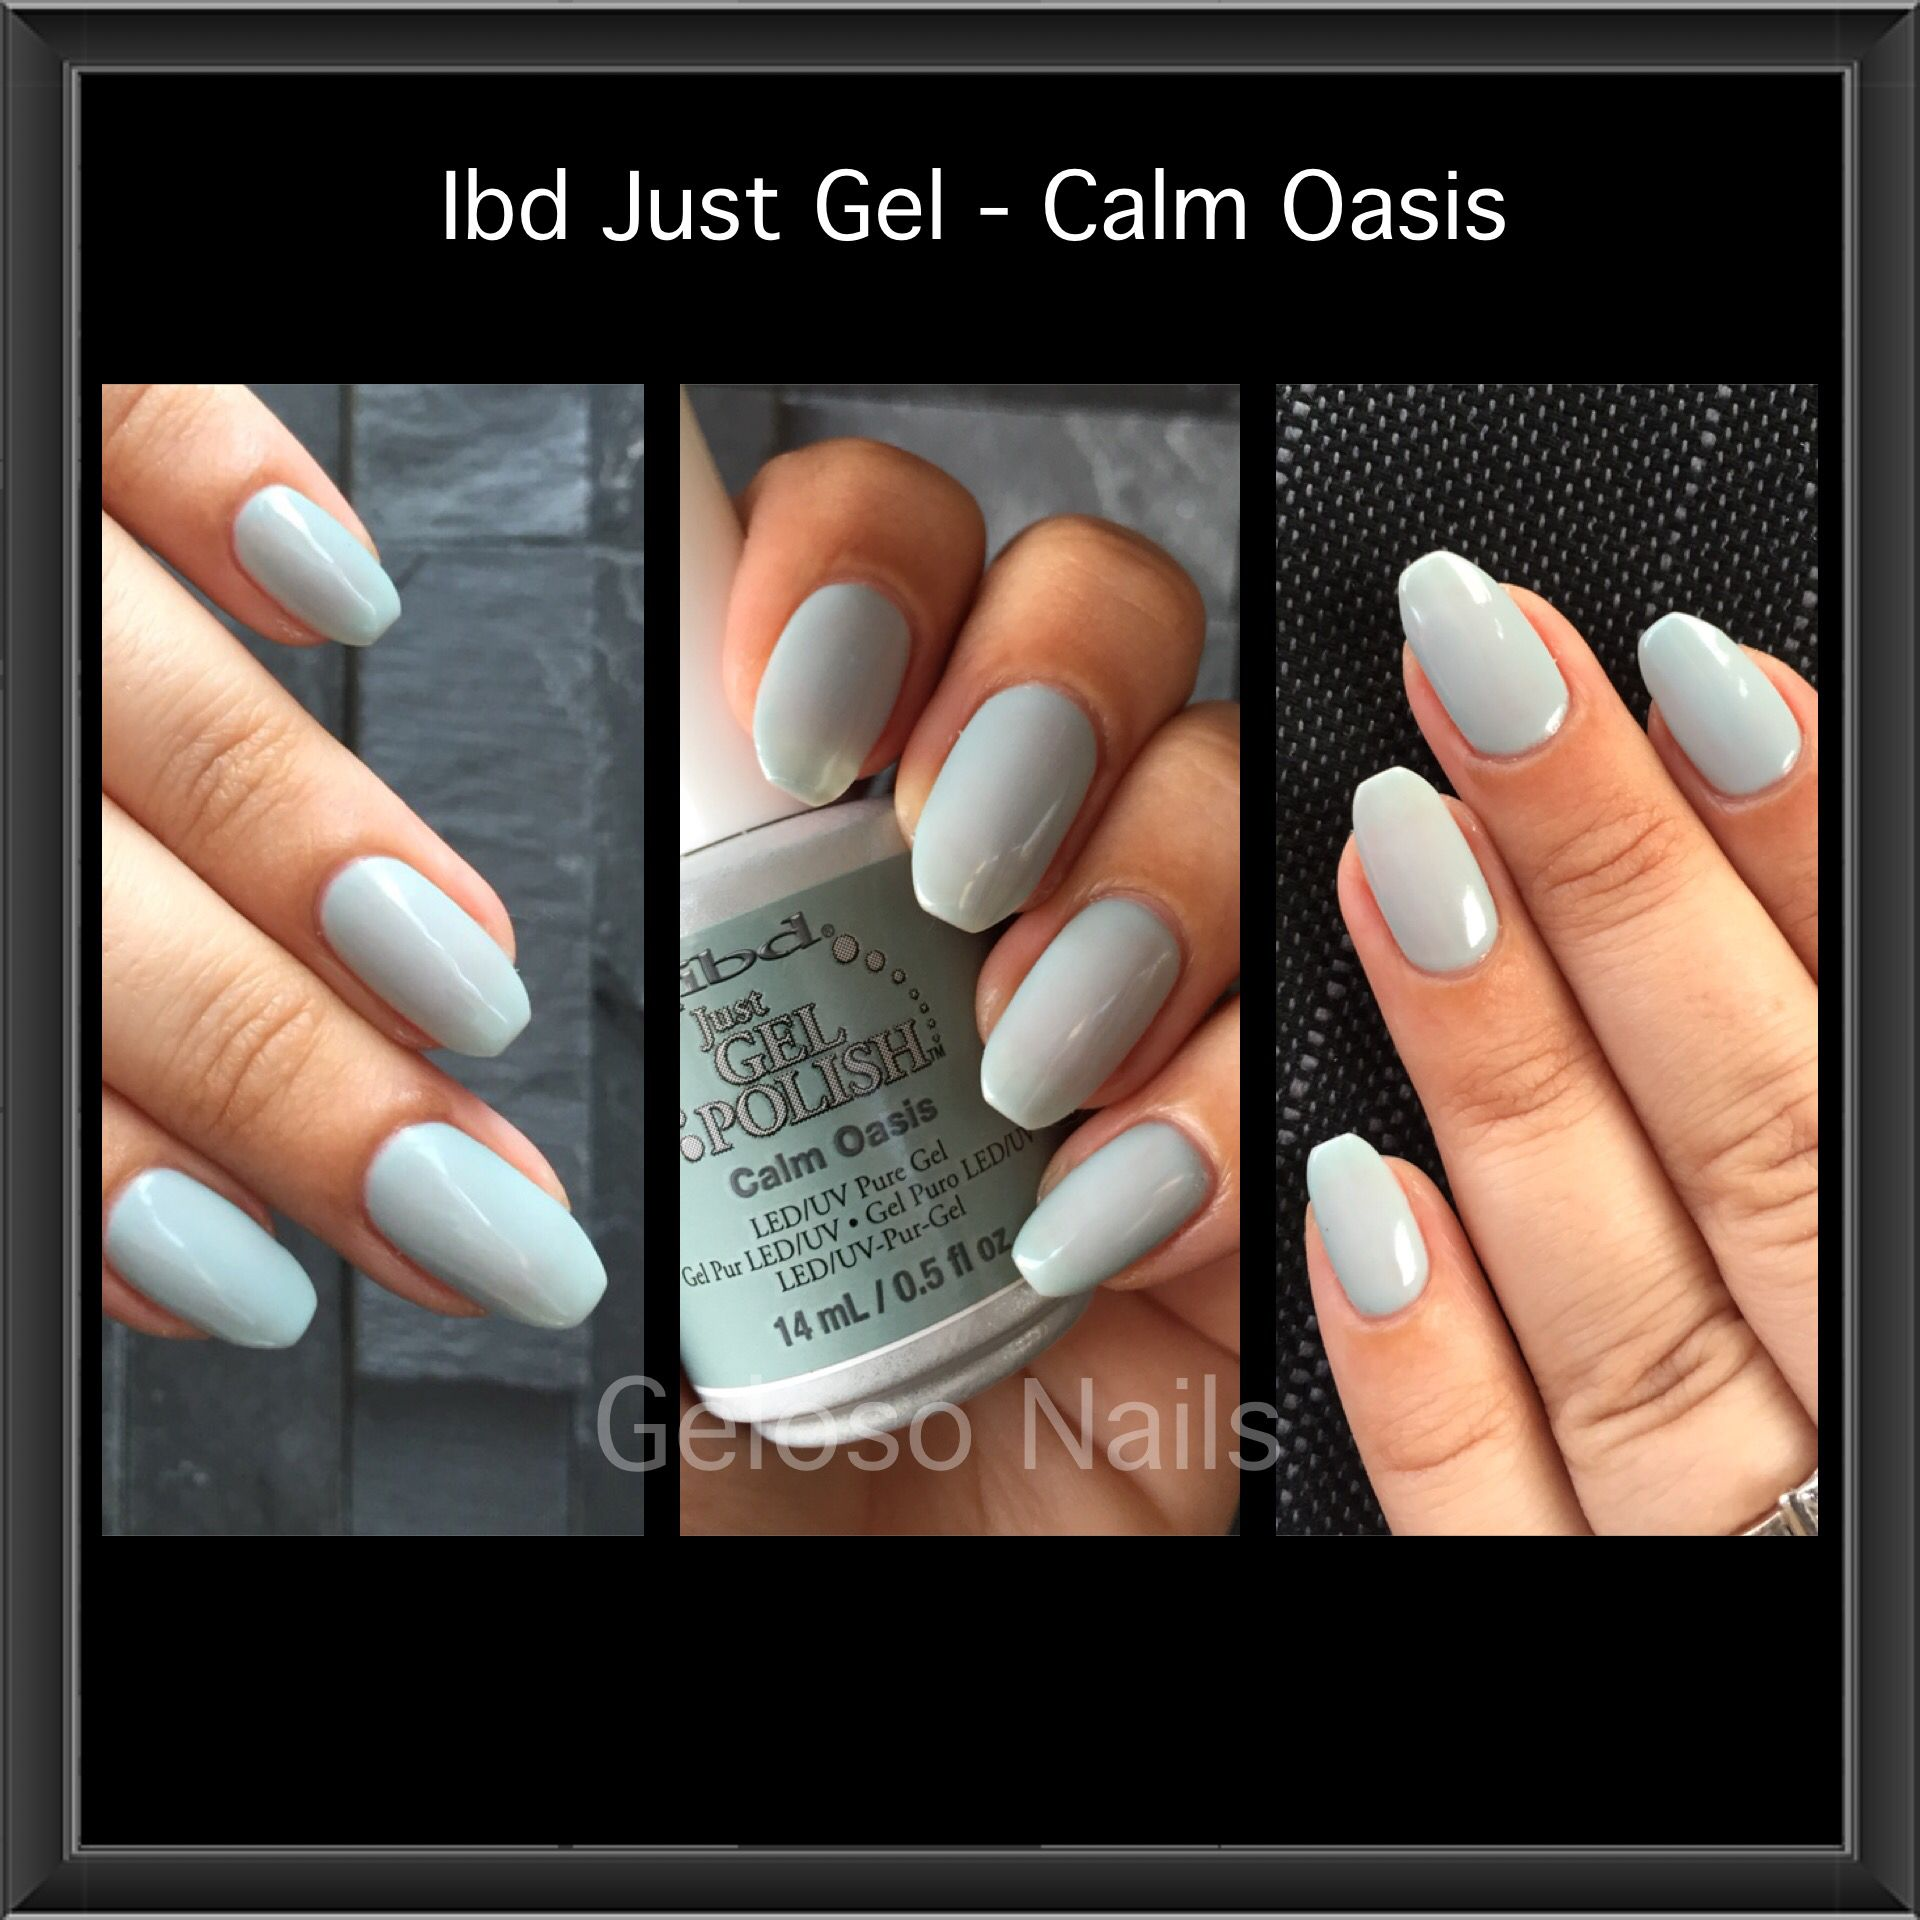 Home ibd just gel polish ibd just gel polish abracadabra - Ibd Just Gel Polish Slurple Purple With Candy Blast Find This Pin And More On Nails By Rubigreen12 See More Calm Oasis